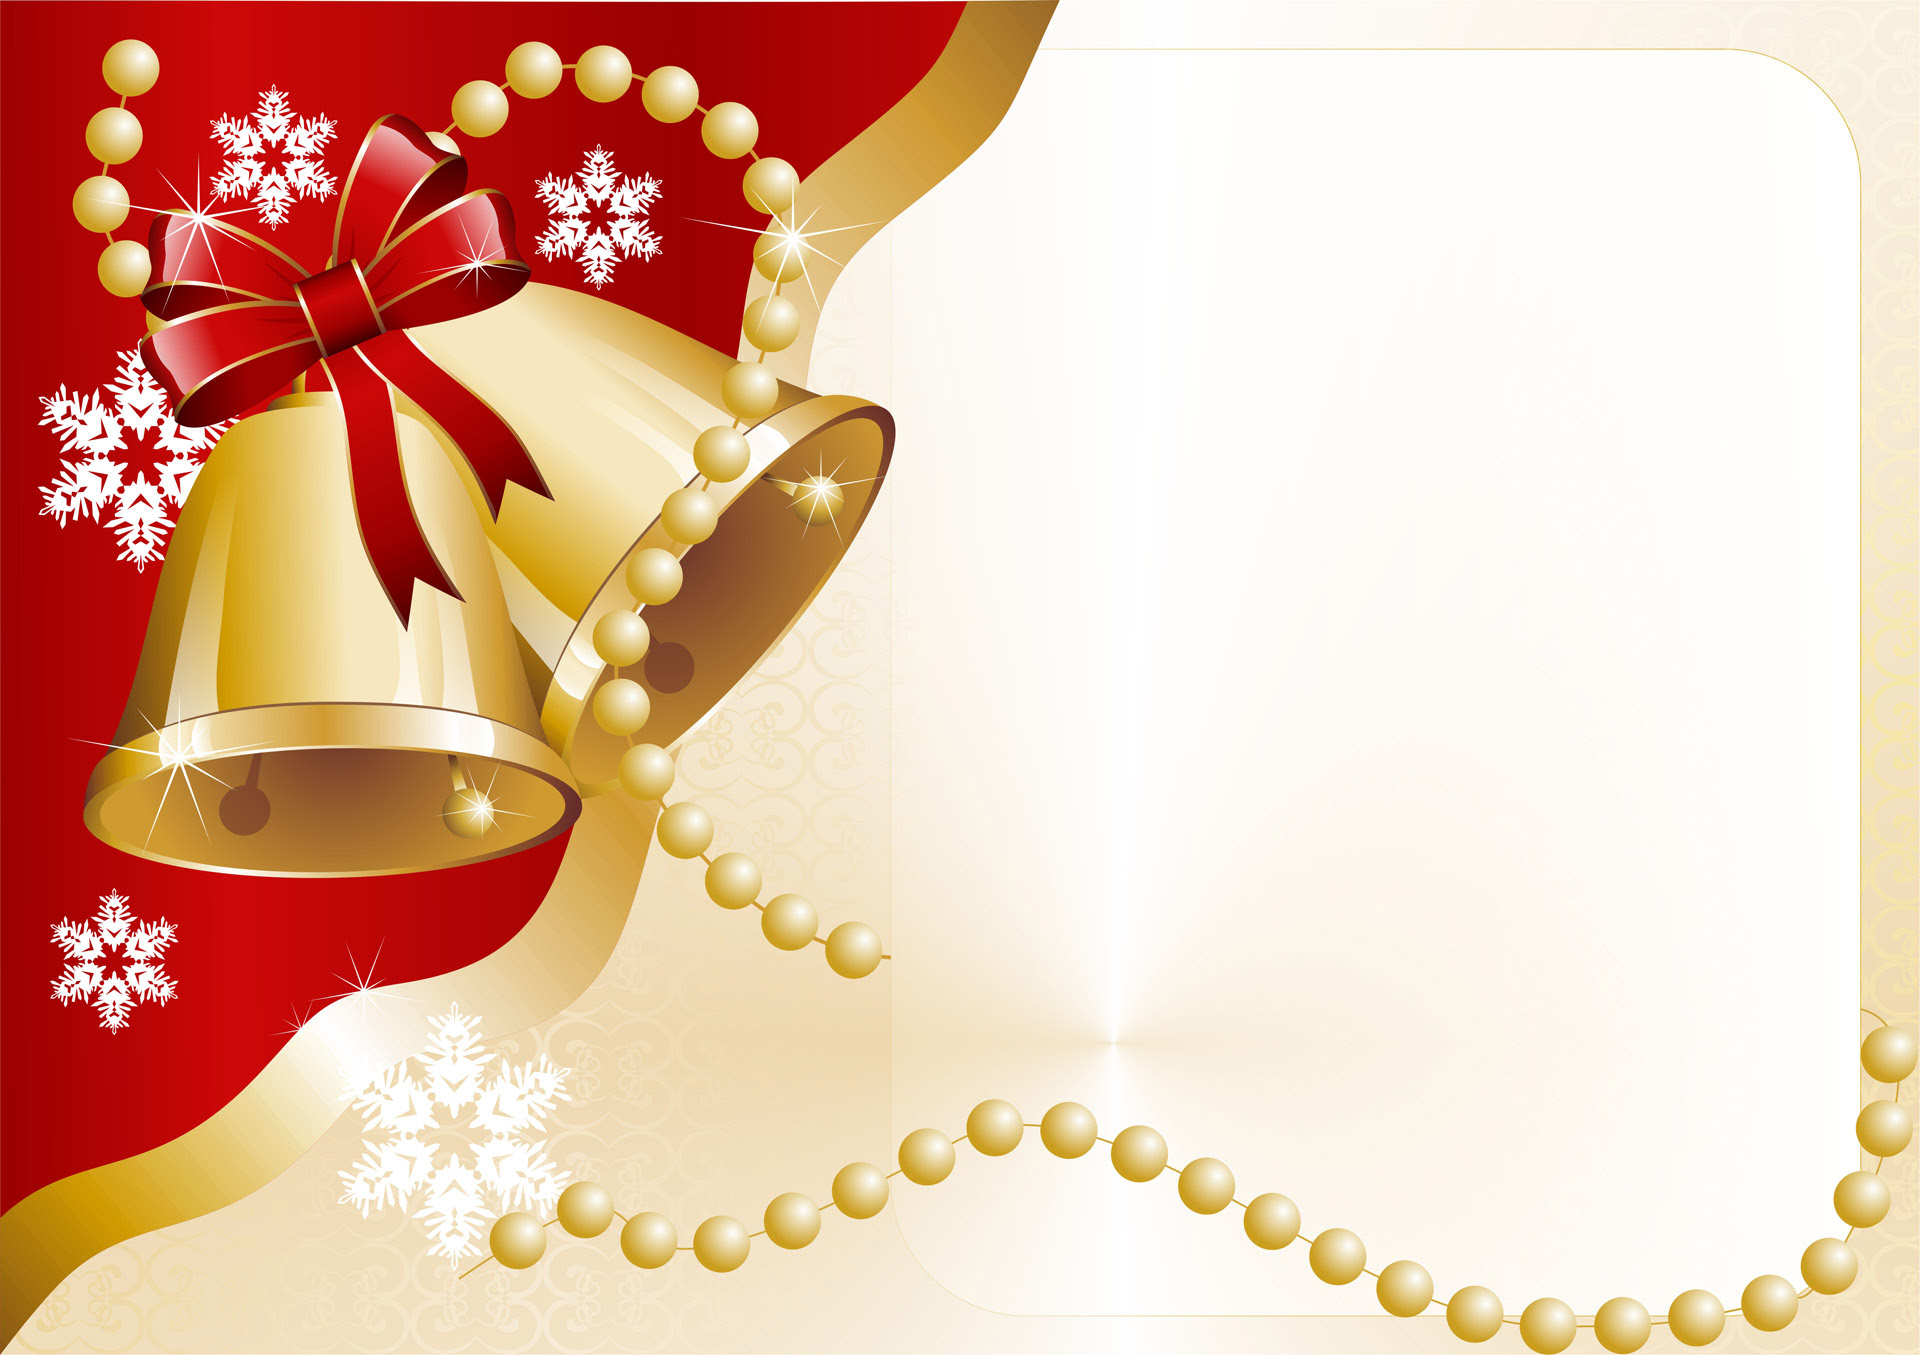 Christmas Cards Free Stock Photo - Public Domain Pictures